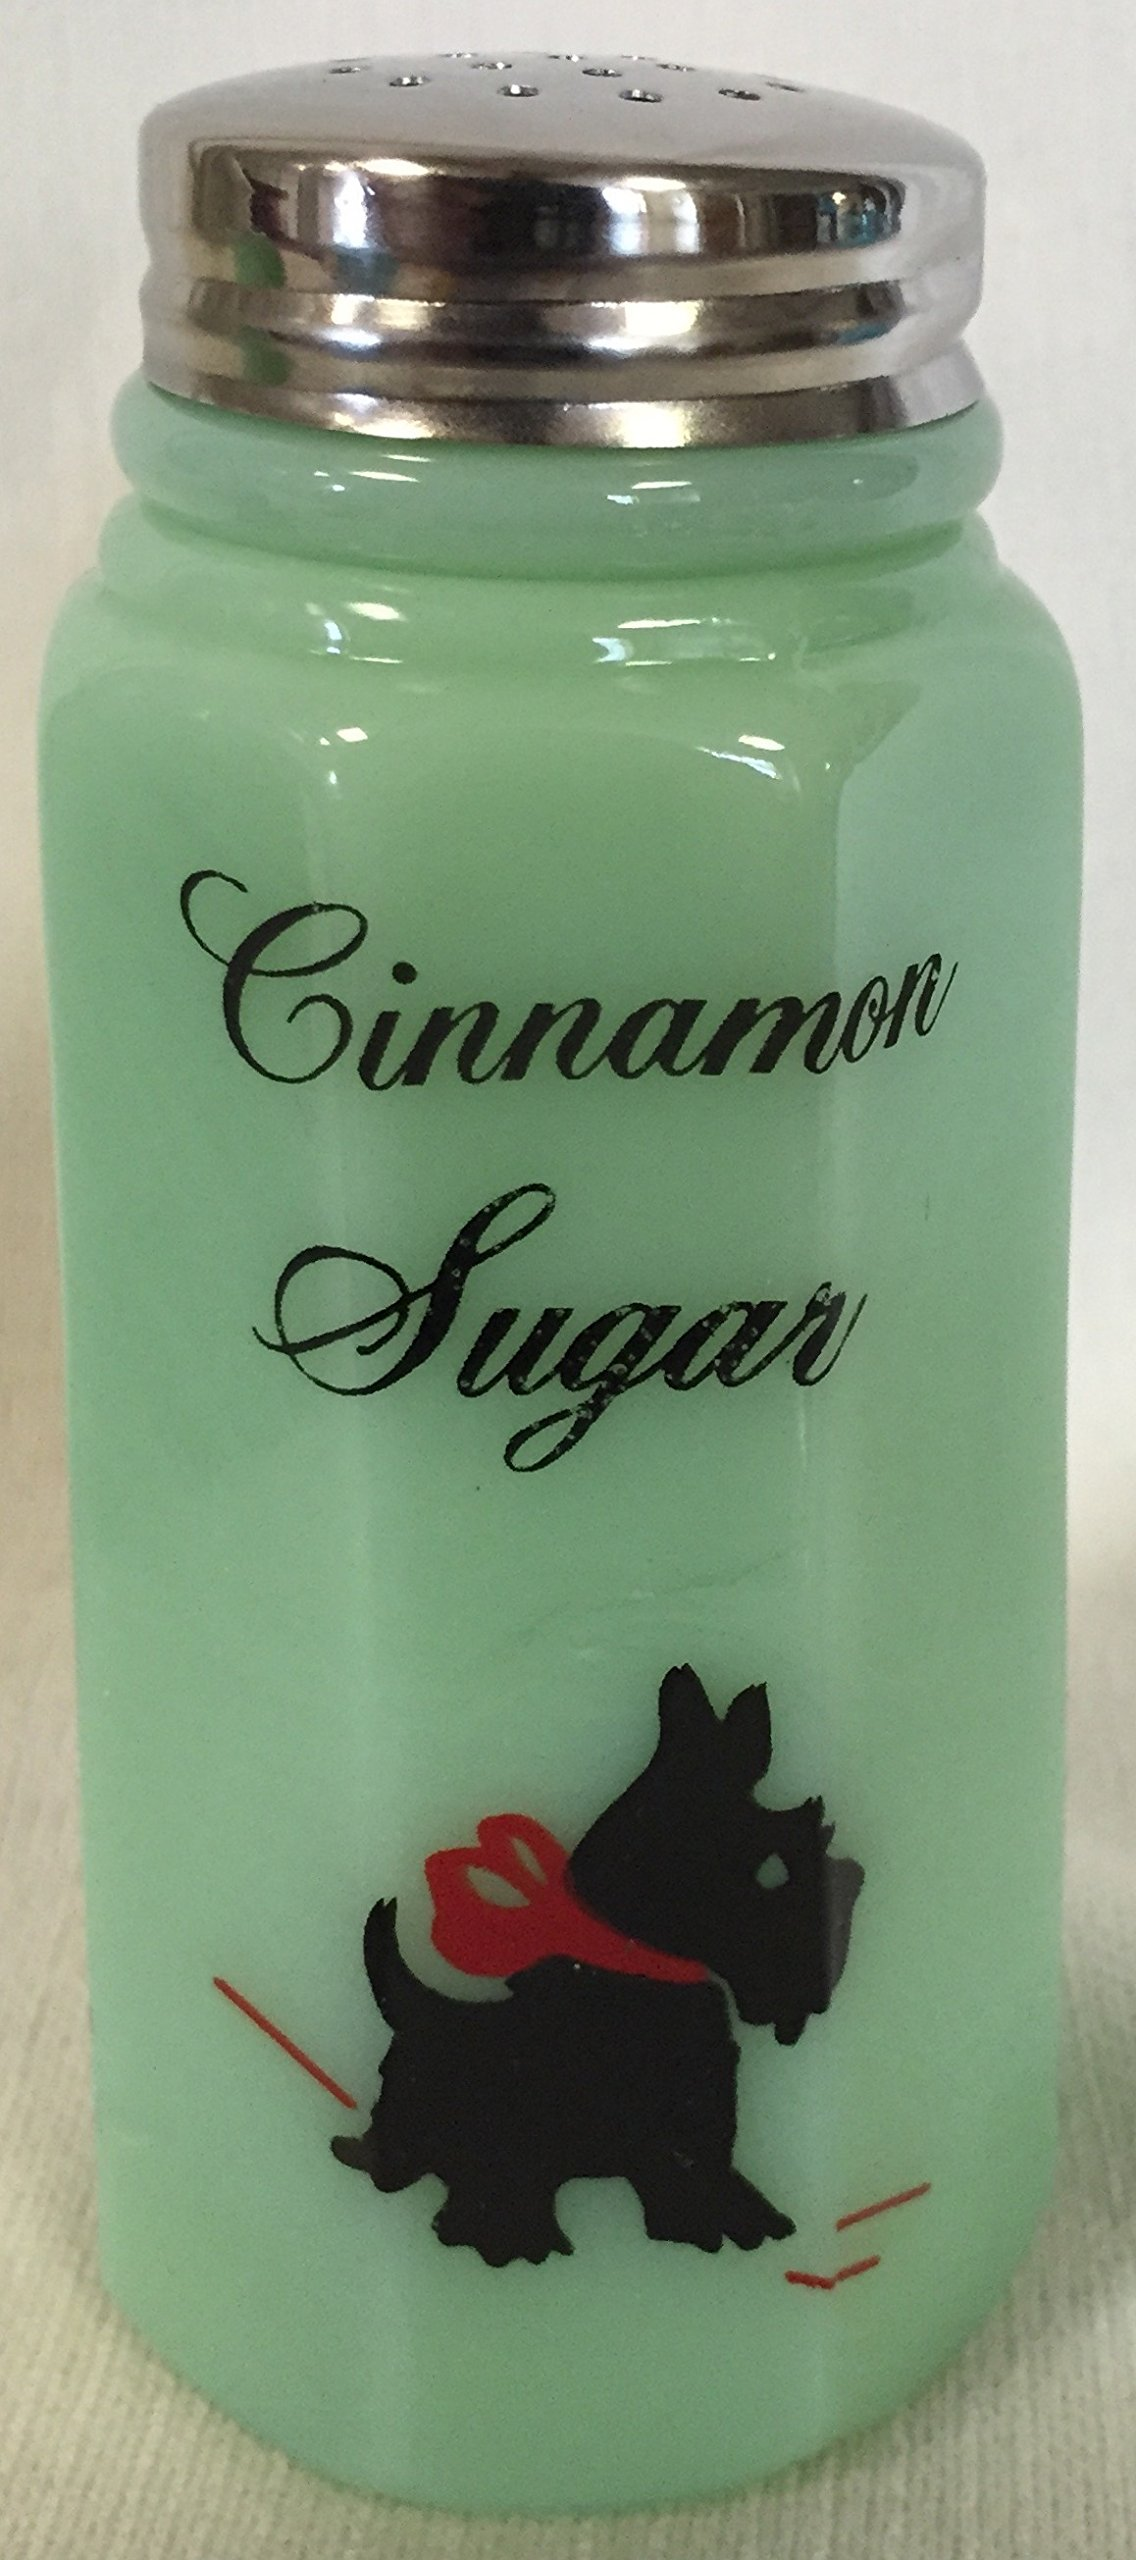 Cinnamon Sugar Shaker - Paneled - Mosser - American Made - Jade Jadeite Glass w/ Red Bow Scottie Scotty Dog